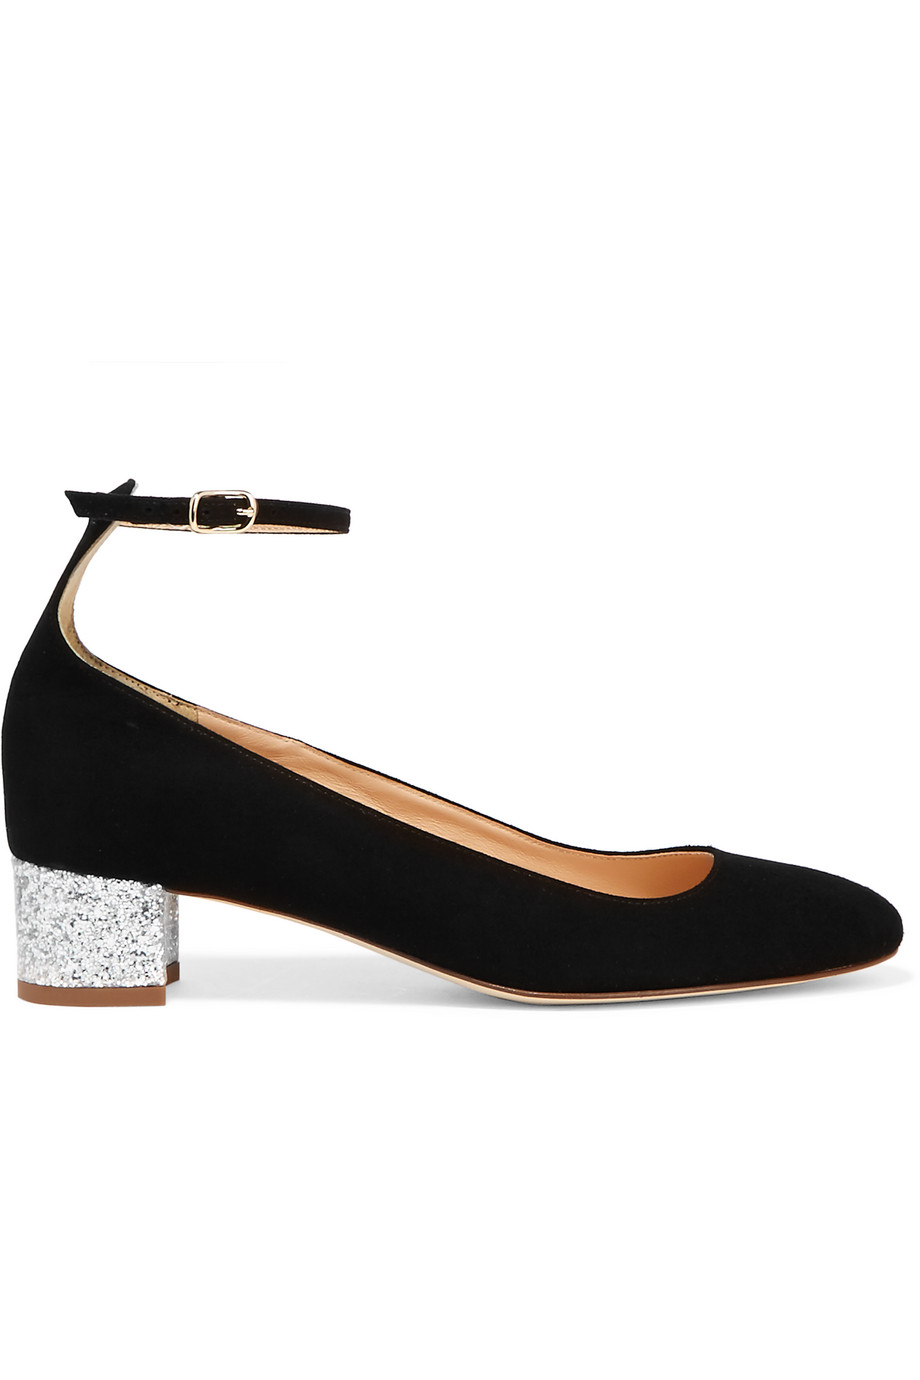 J.Crew Evelyn Suede Pumps, Size: 9.5